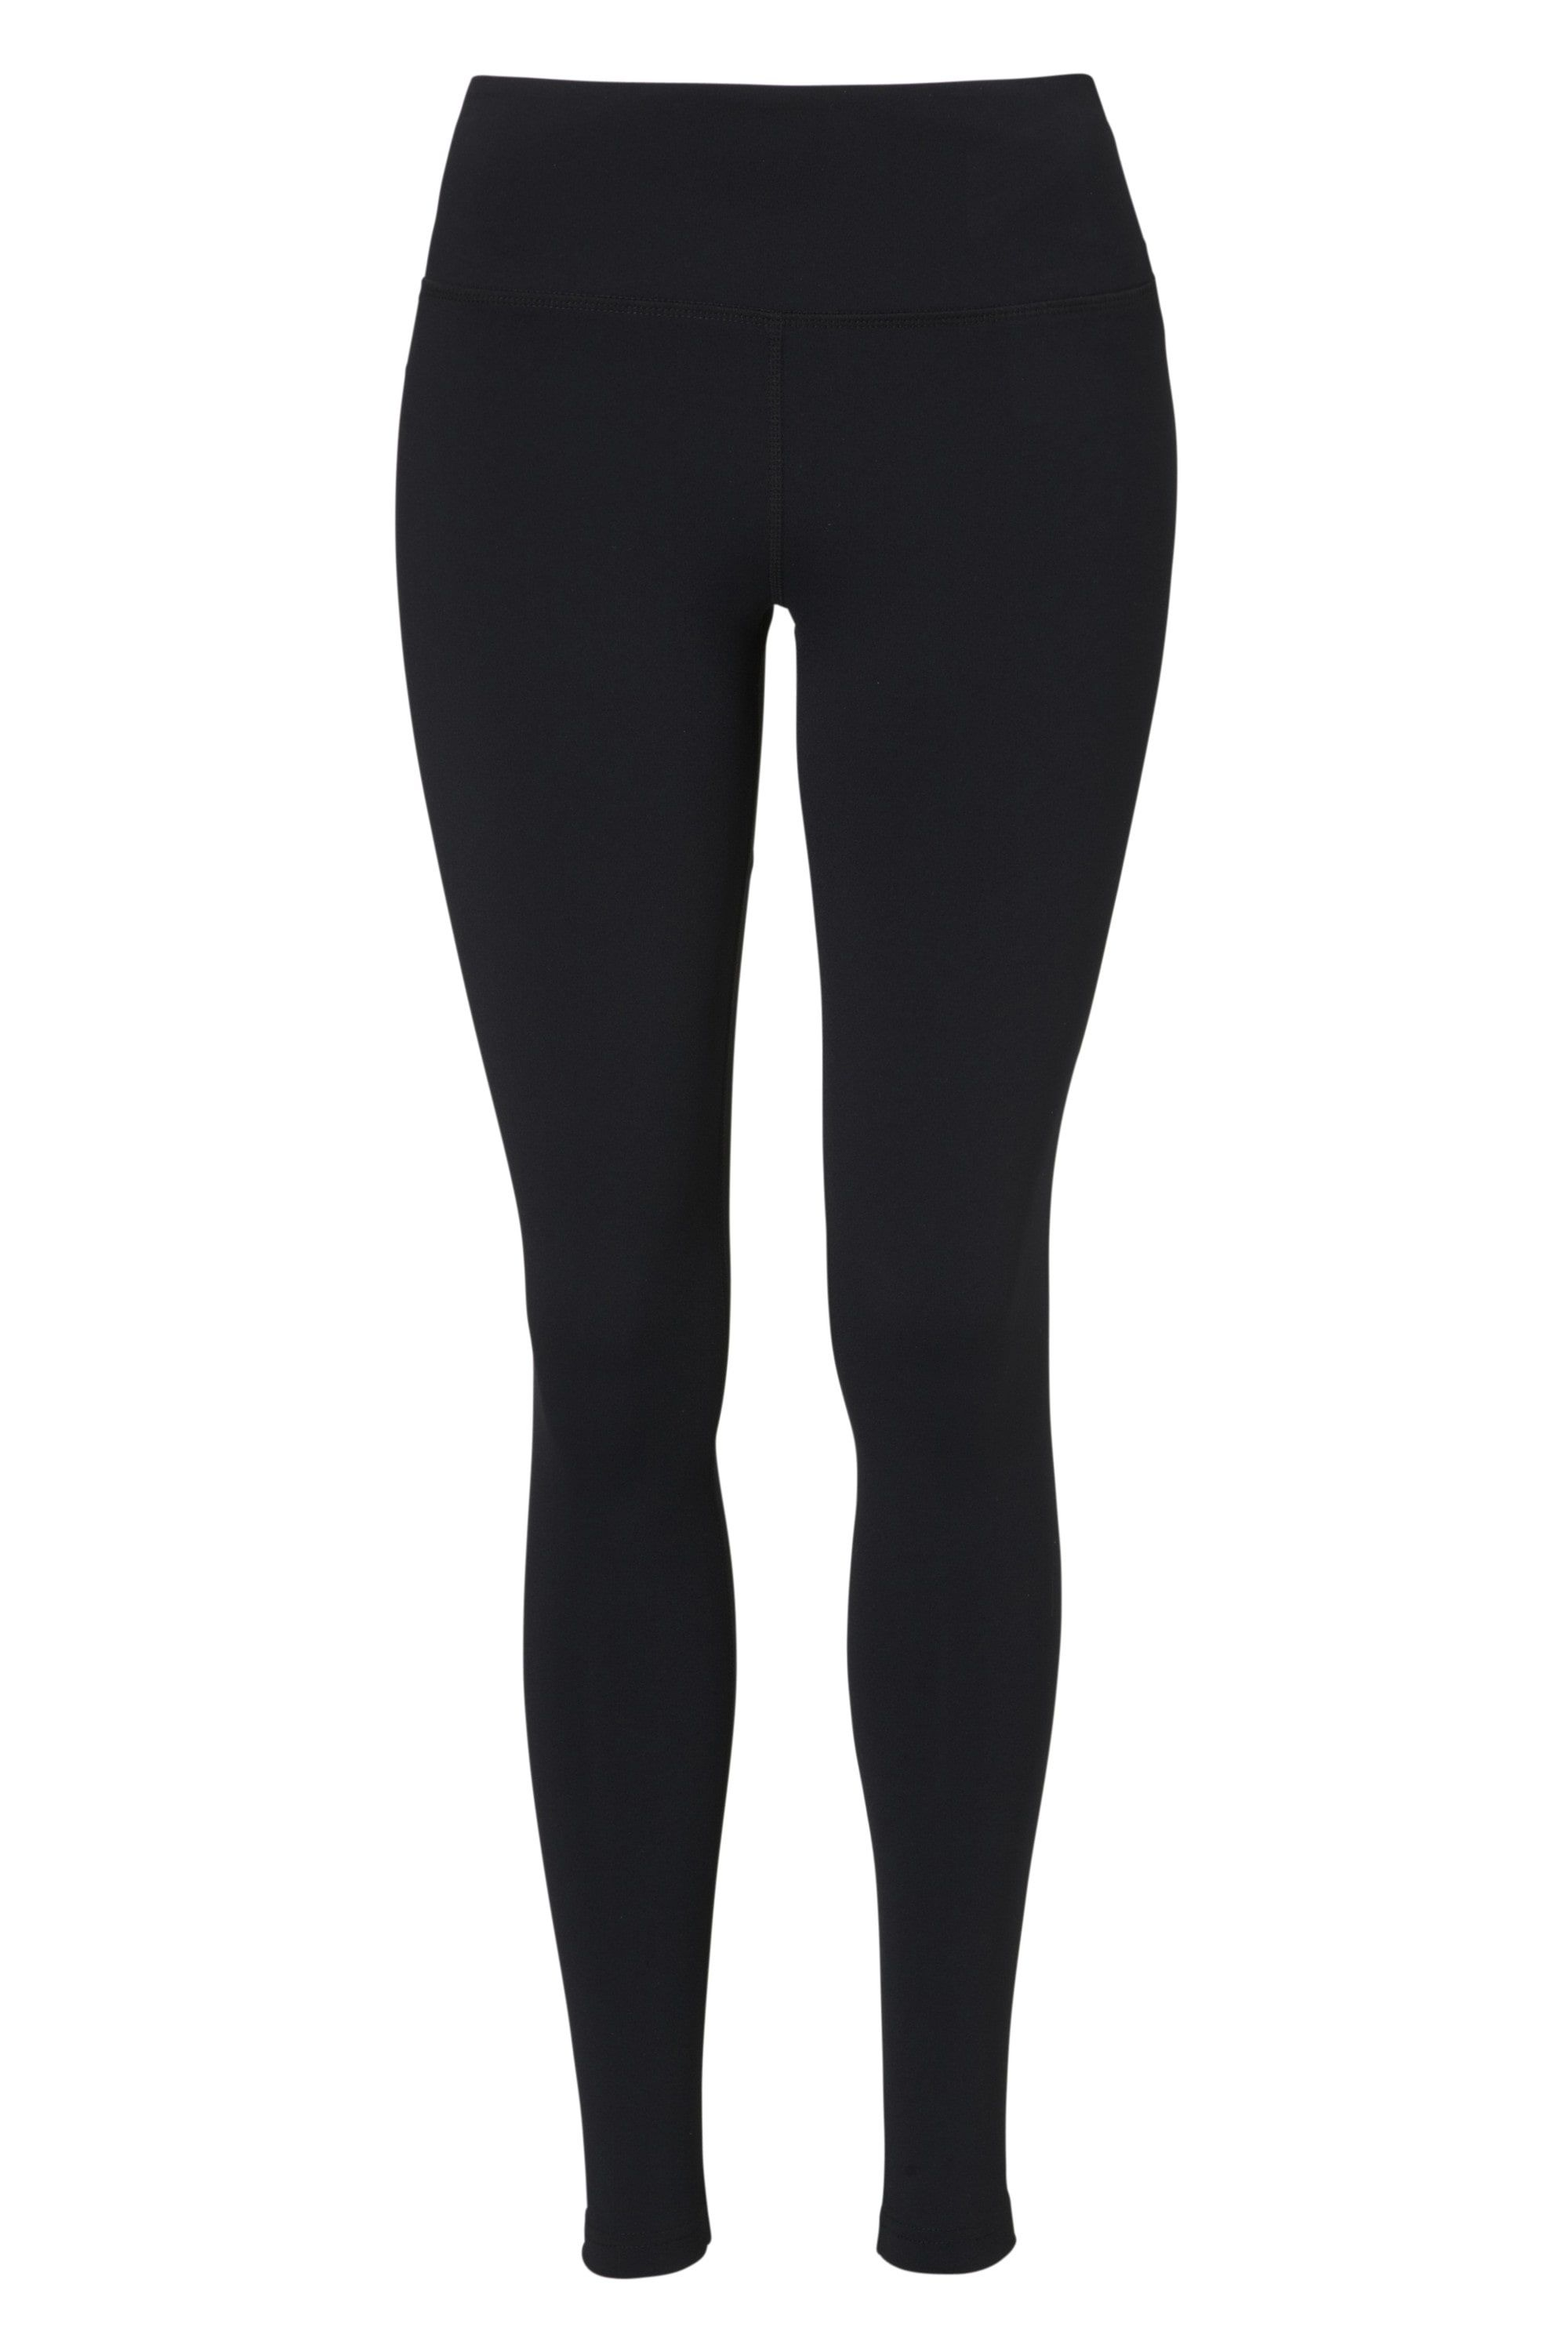 Ten Cate Women Sport Pants